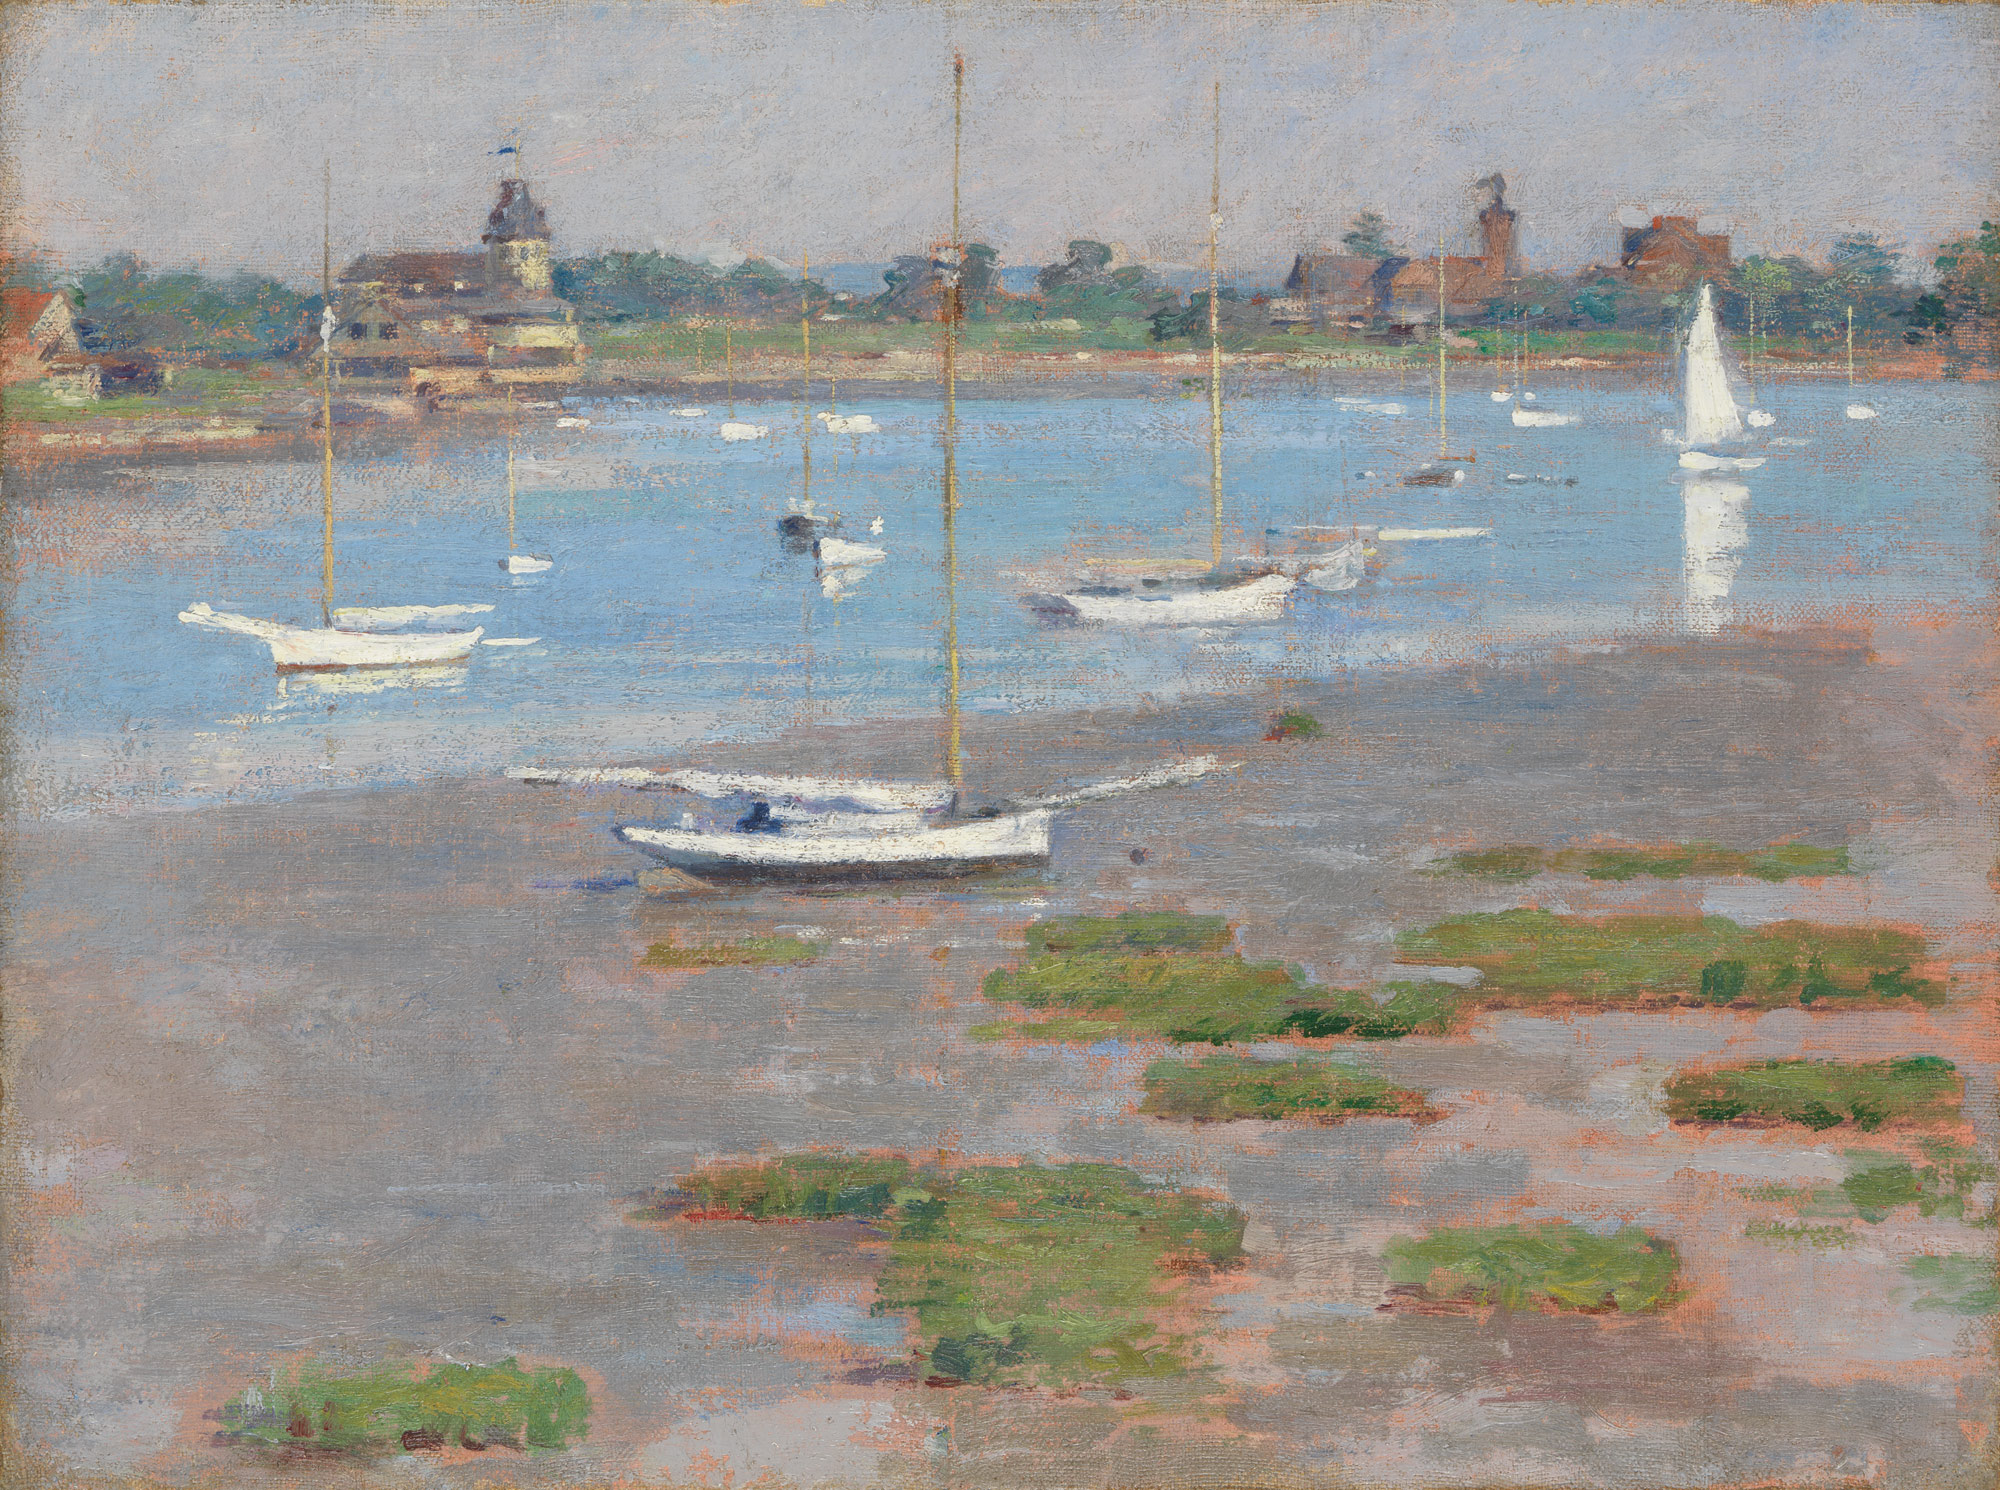 american impressionism essay heilbrunn timeline of art history the room middot low tide riverside yacht club